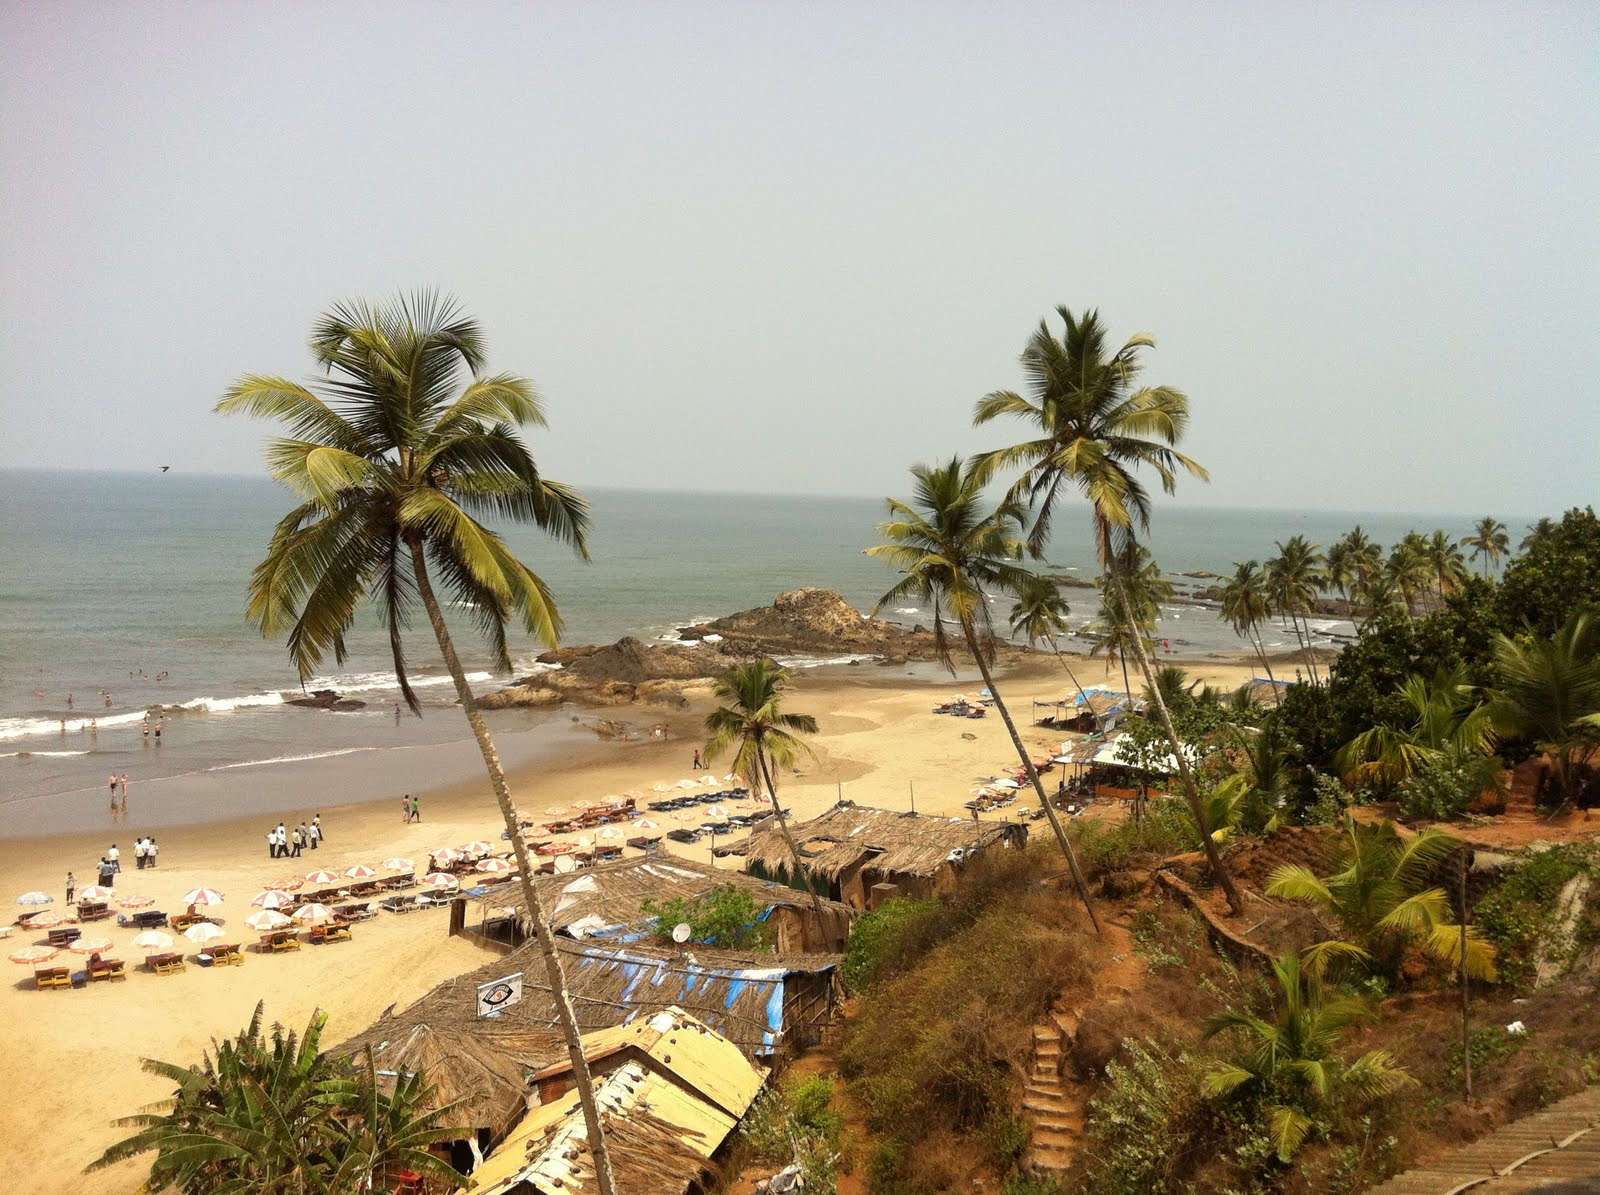 Little Vagator, Goa